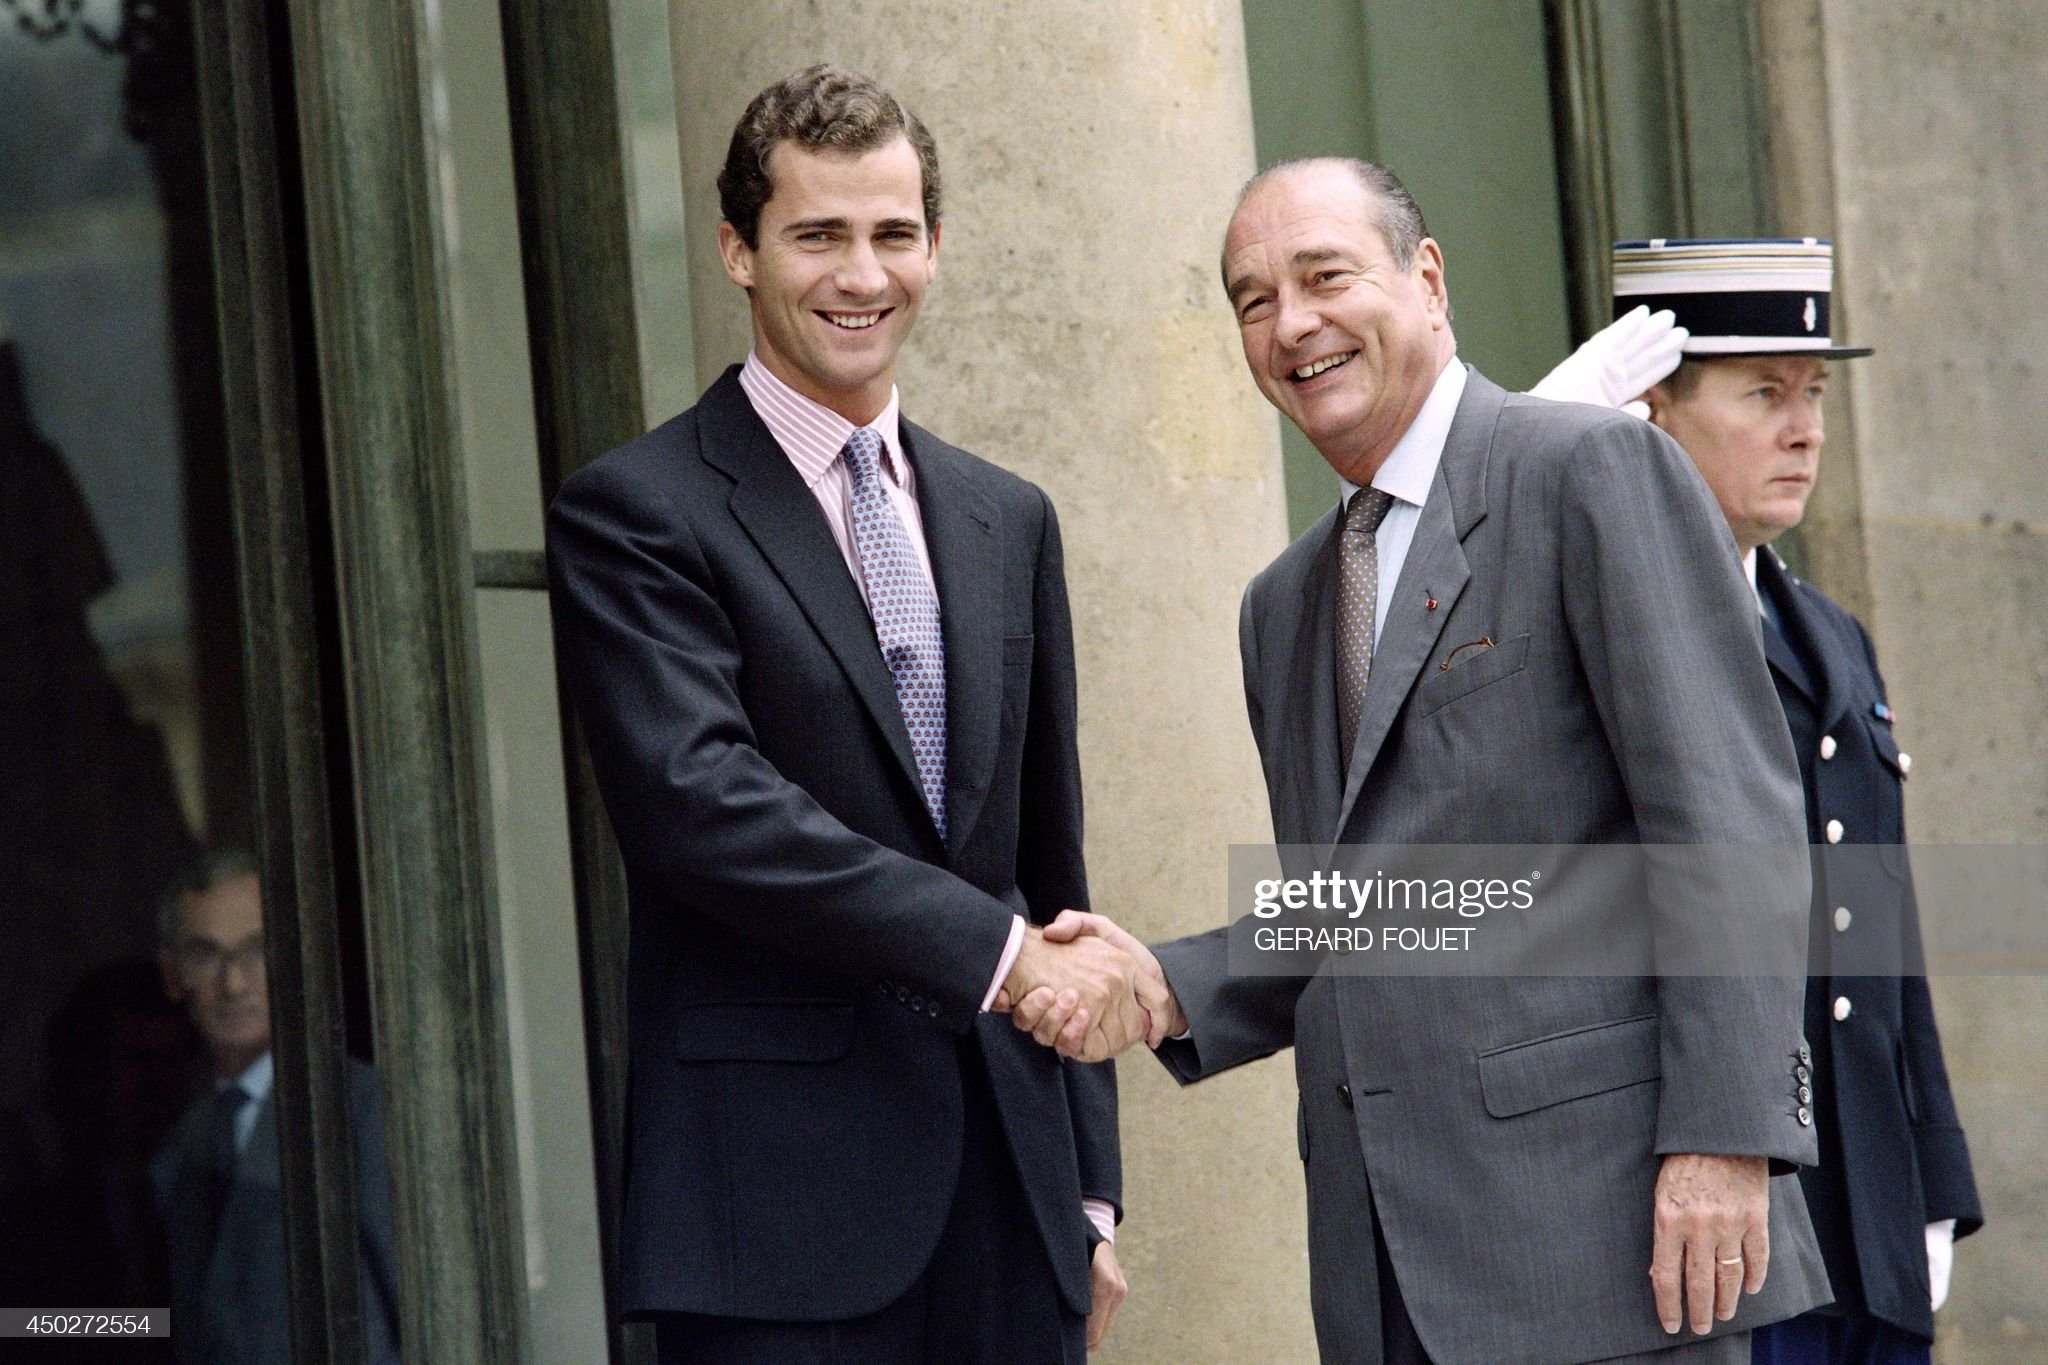 french-president-jacques-chirac-welcomes-on-october-2-1996-spanish-picture-id450272554